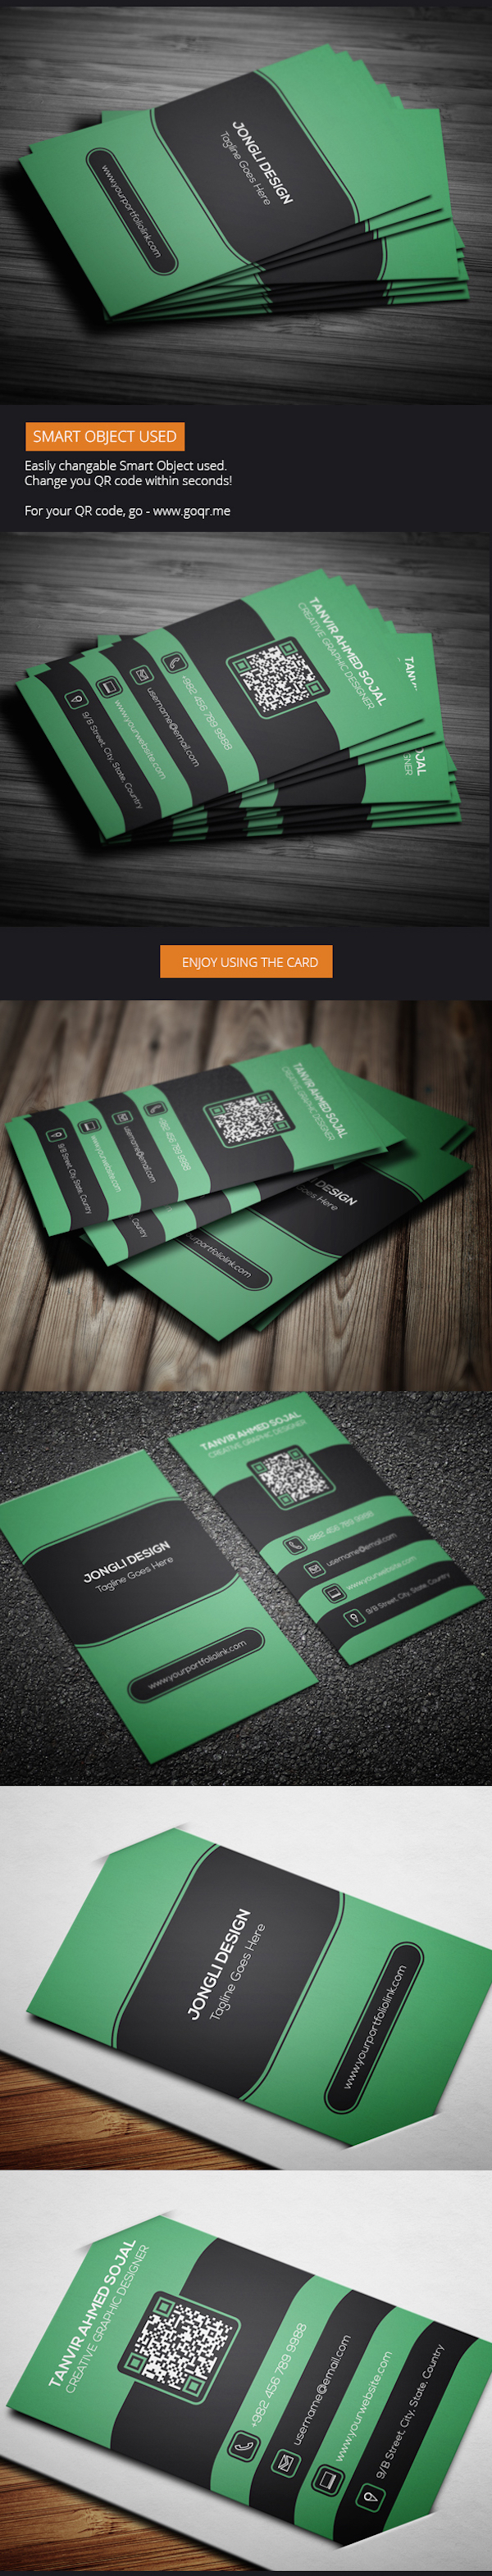 40 latest free business card psd templates devzum free business card psd templates reheart Choice Image